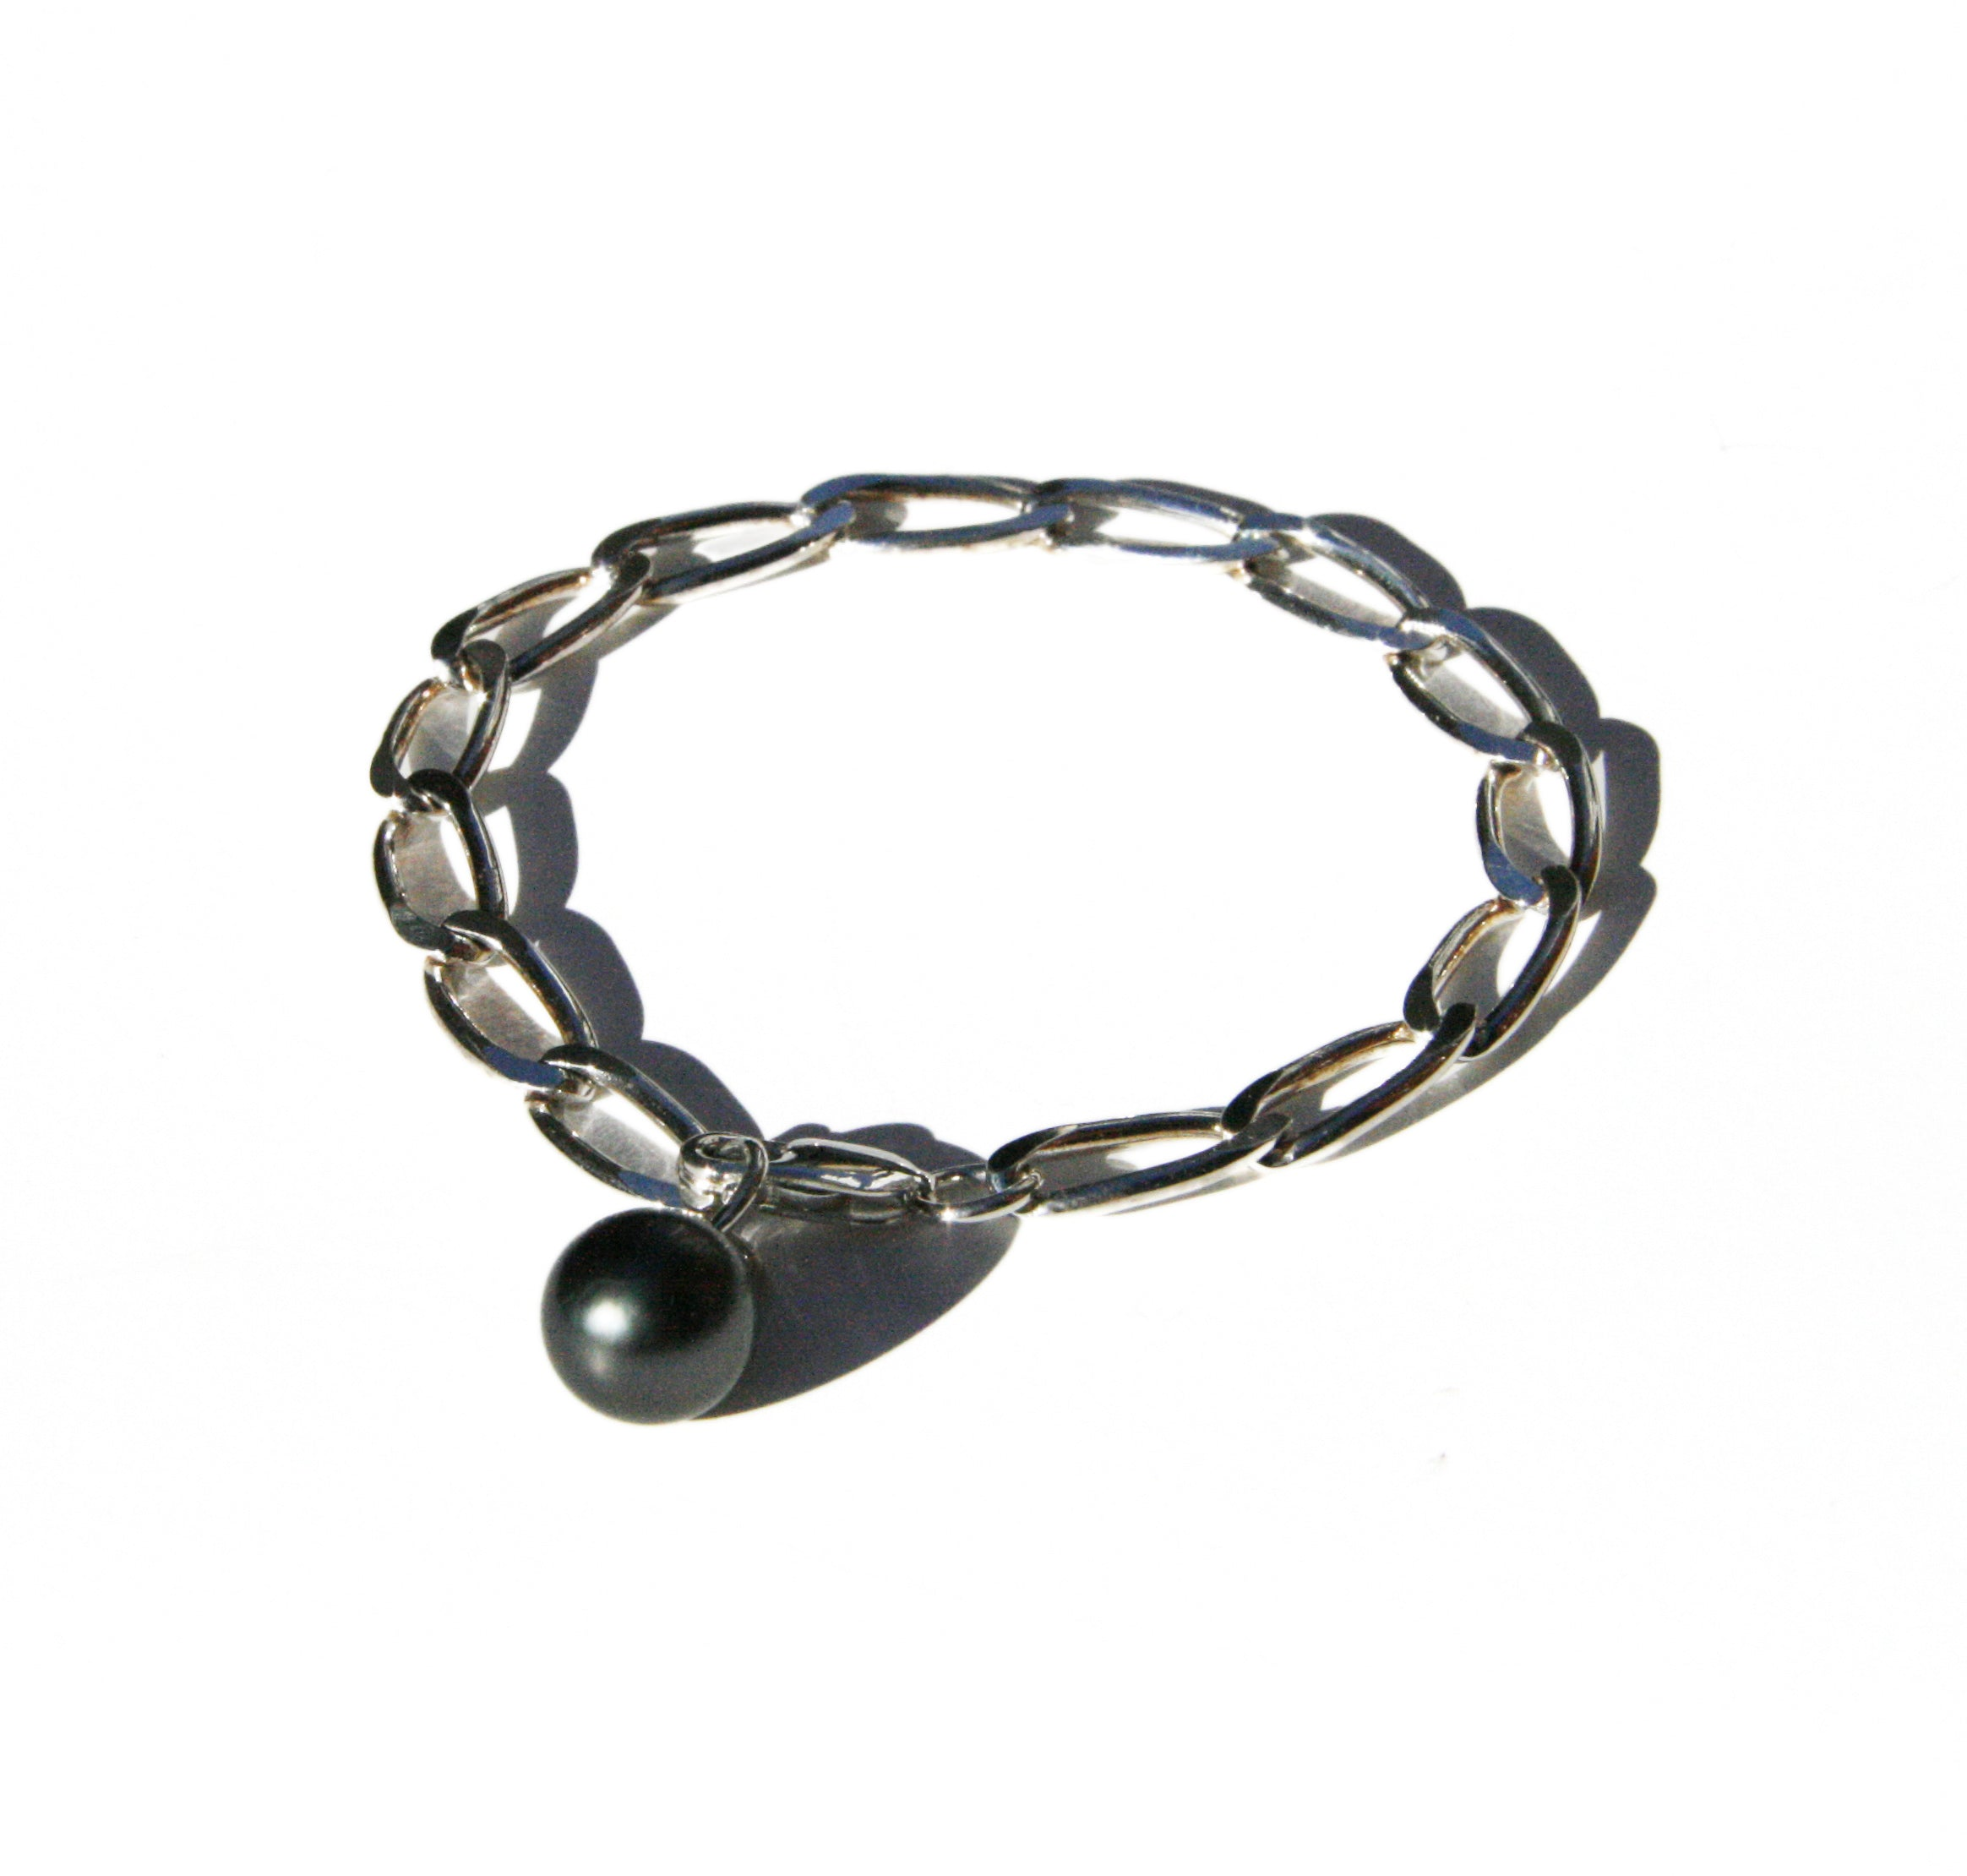 Bracelet with Tahitian pearl charm